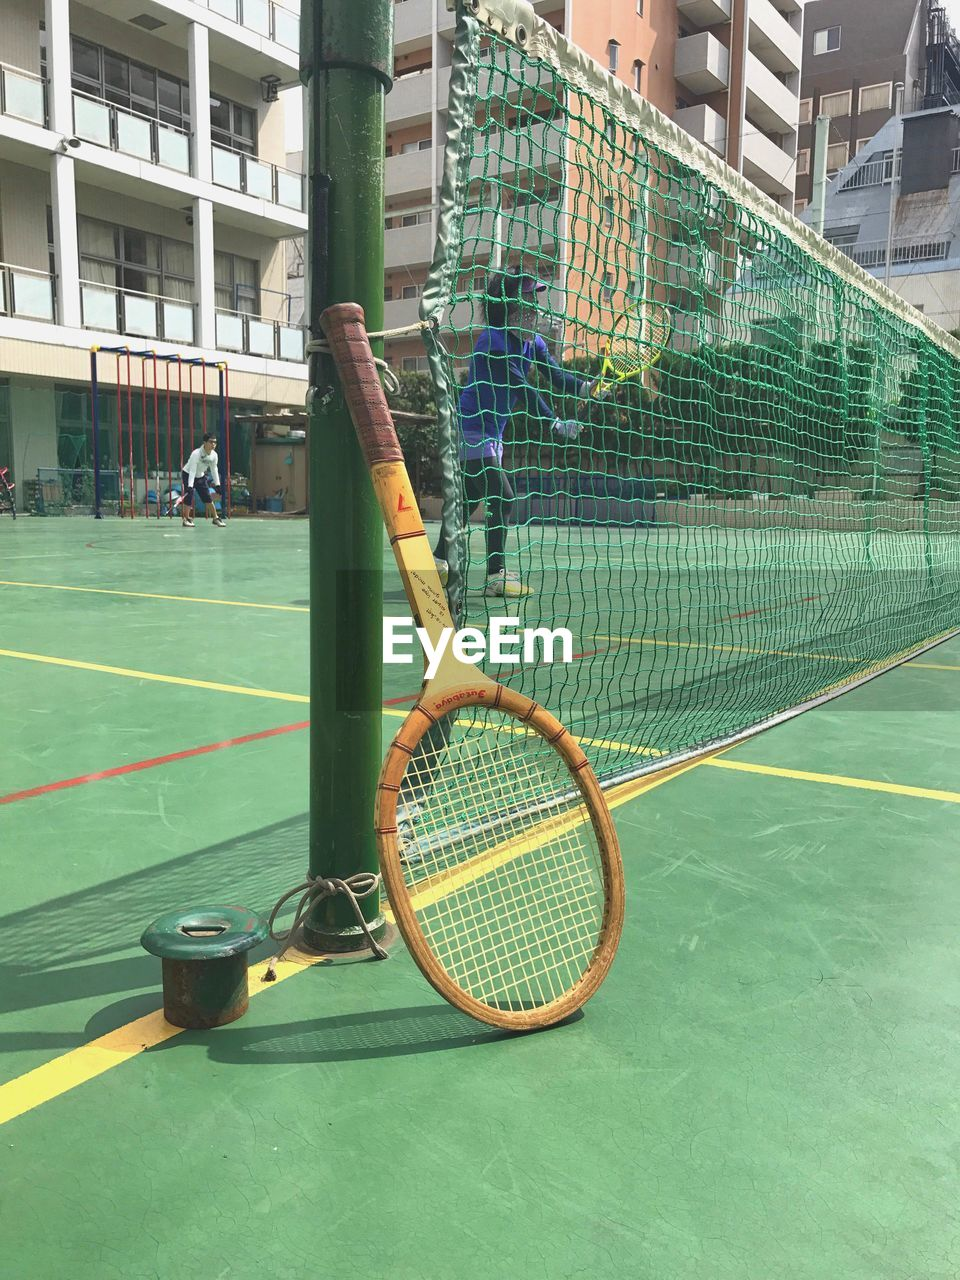 sport, tennis, court, racket, tennis racket, tennis ball, net - sports equipment, day, playing, ball, architecture, built structure, leisure activity, real people, racket sport, tennis net, outdoors, building exterior, people, competition